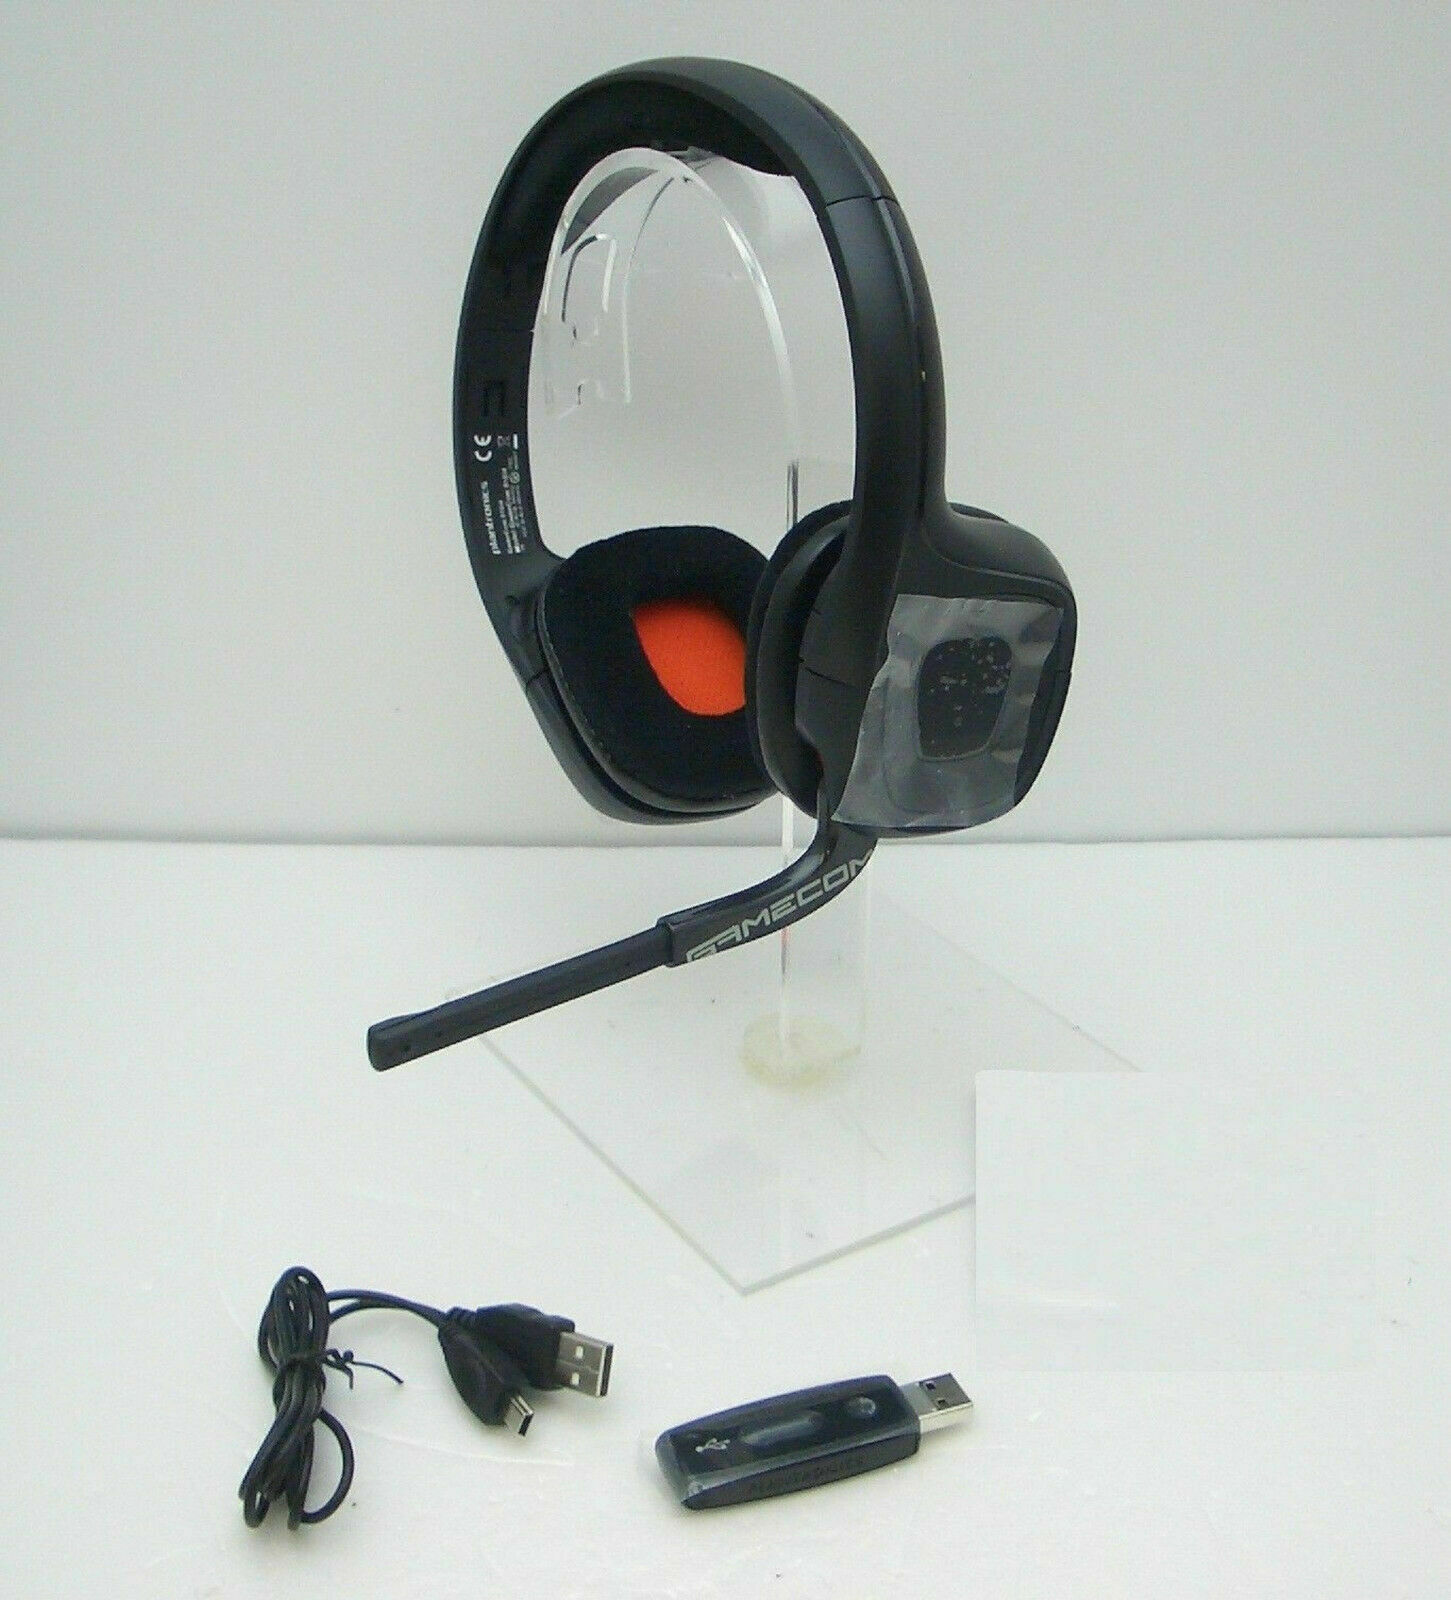 Plantronics GameCom 818 Stereo Gaming Headset for PC, Mac, PS4. Mint Condition